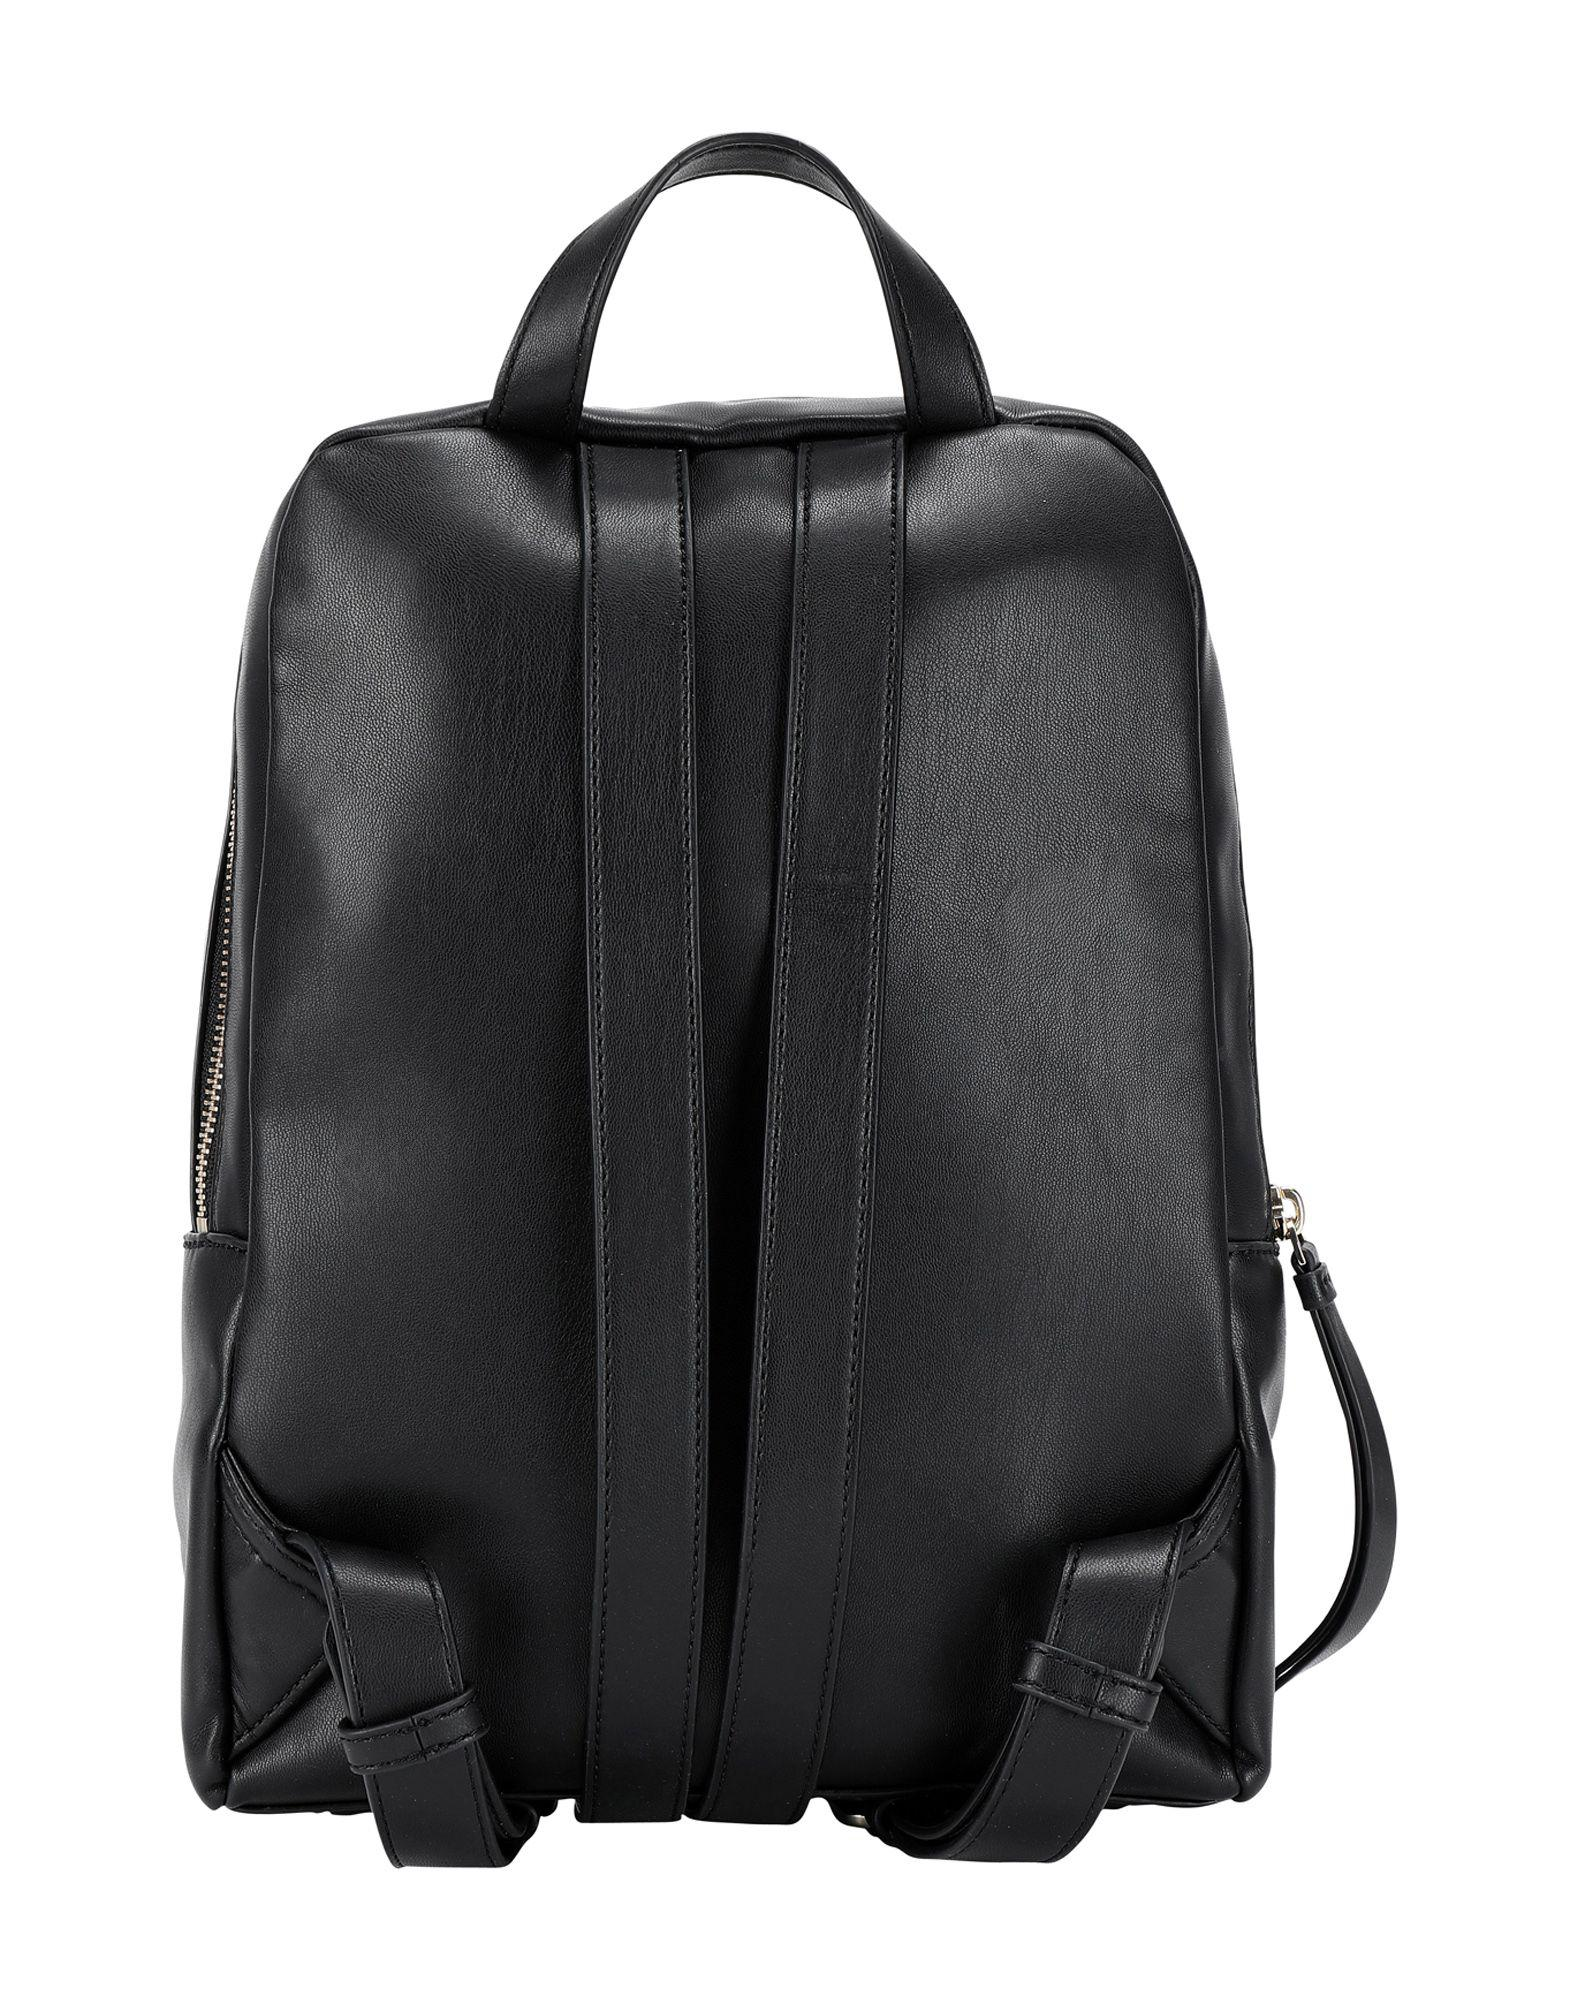 ac1a43fb748 Dkny Backpacks   Bum Bags in Black - Lyst